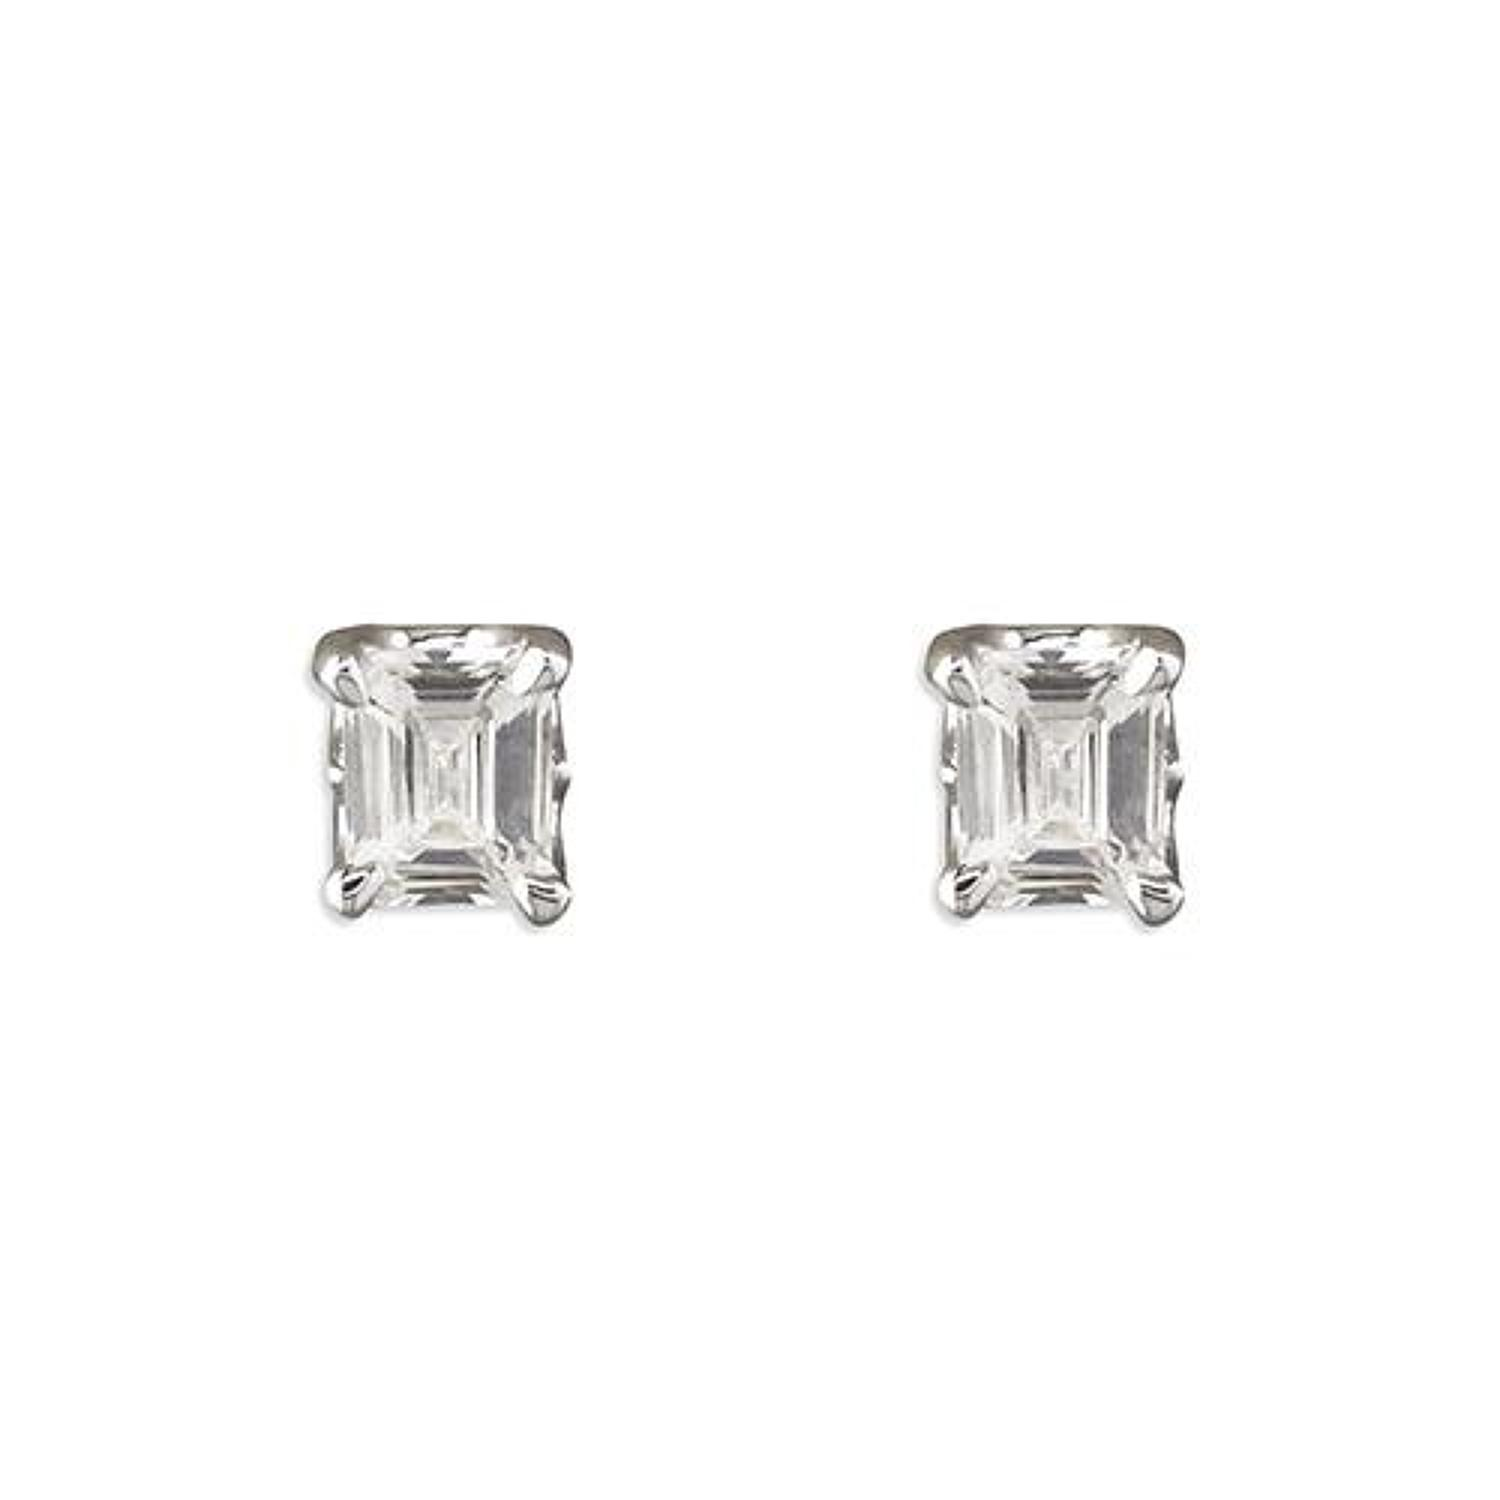 Sterling Silver Cubic Zirconia Rectangle Stud Earrings